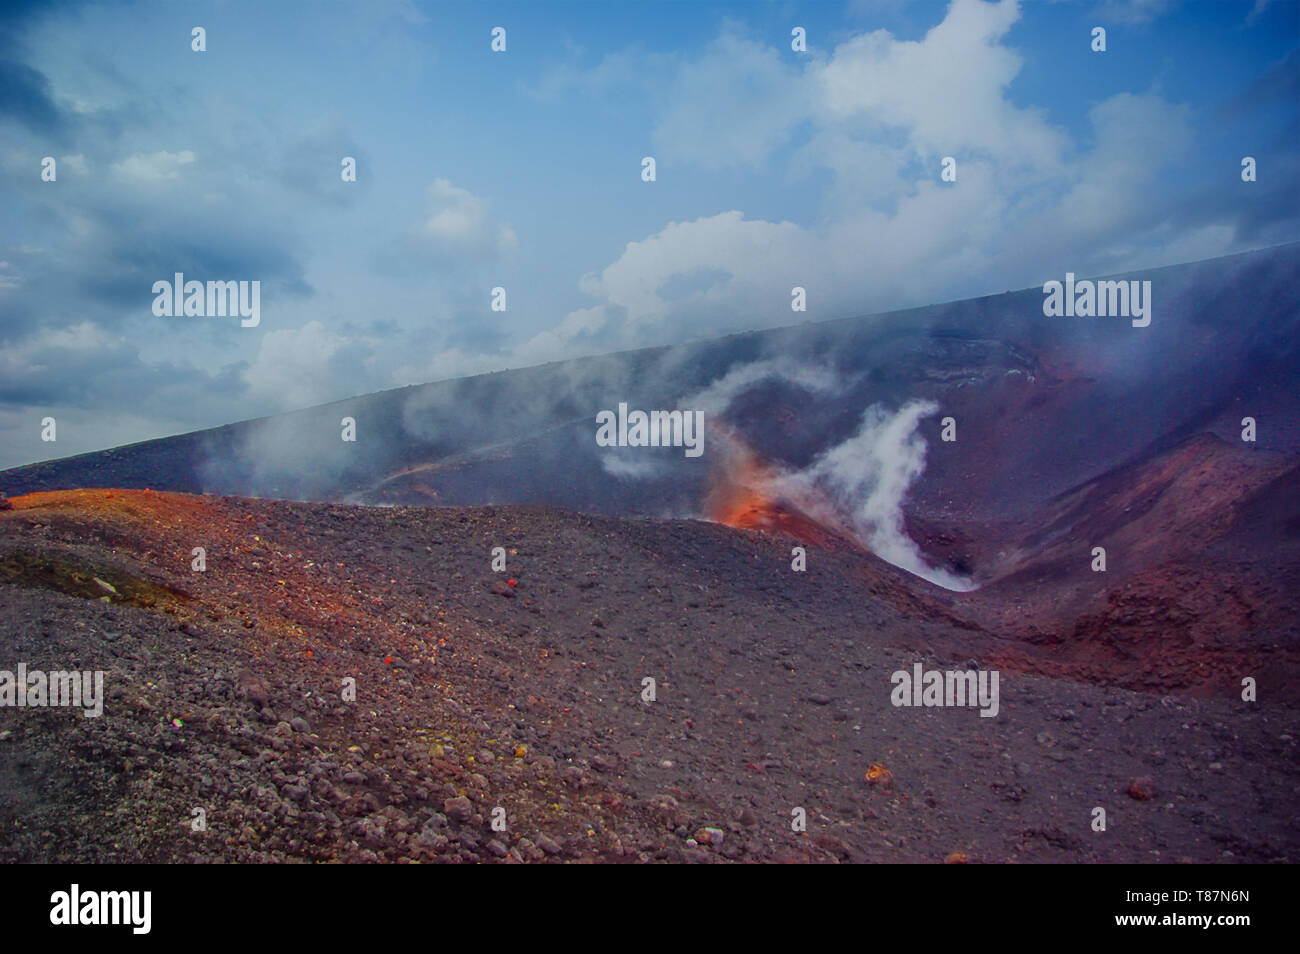 Mountain crater active volcano. smoke comes out of a volcano vent - Stock Image